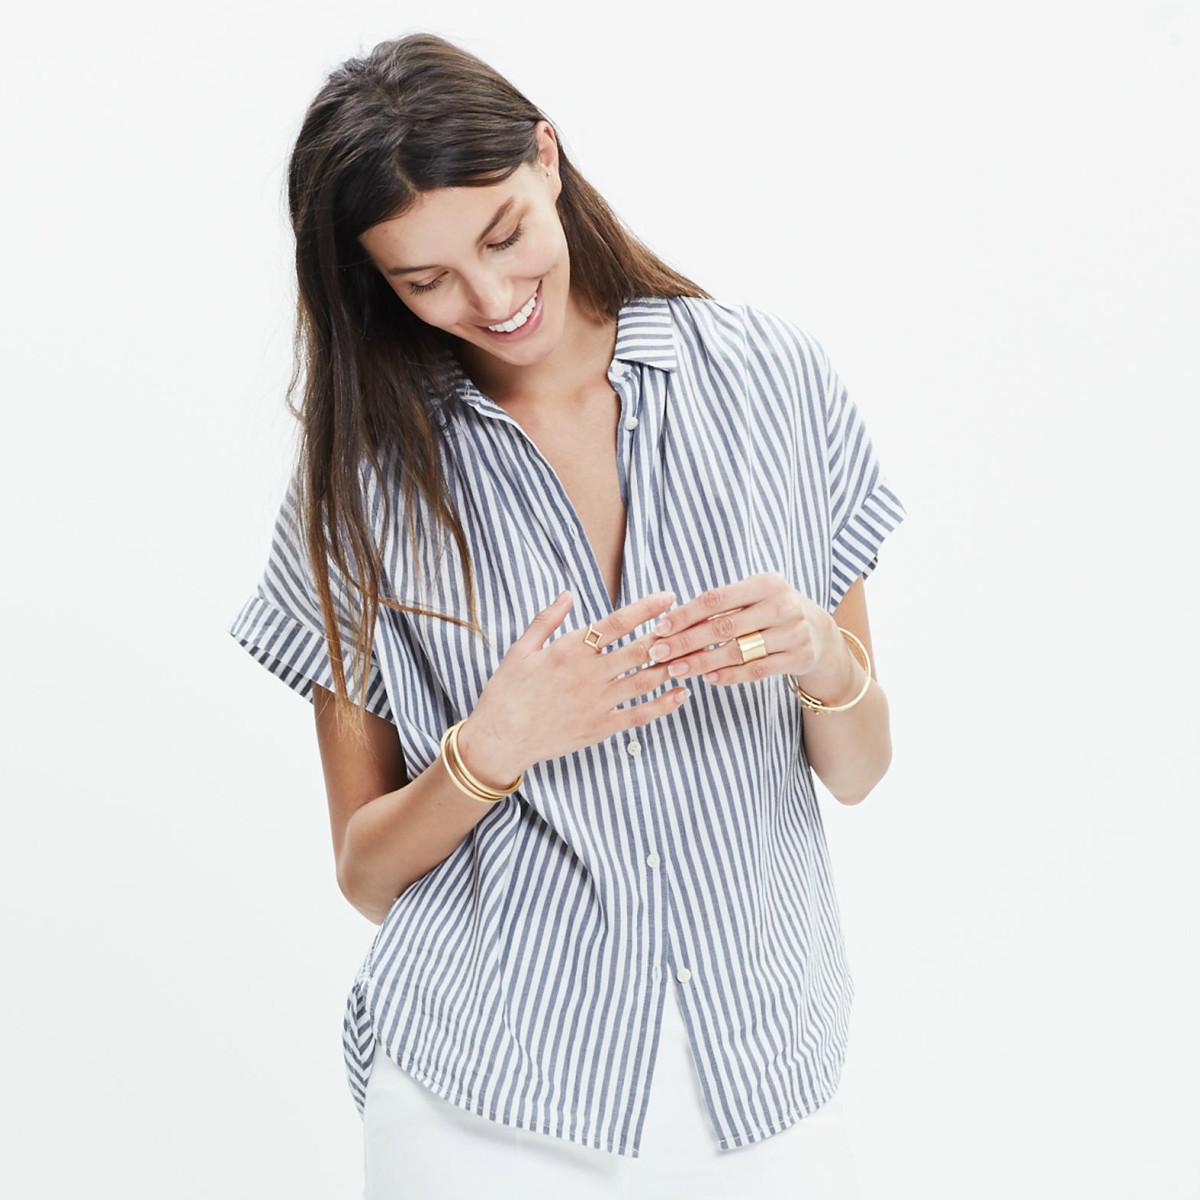 Madewell Central Shirt in Chambray Stripe, $69.50, available at Madewell.